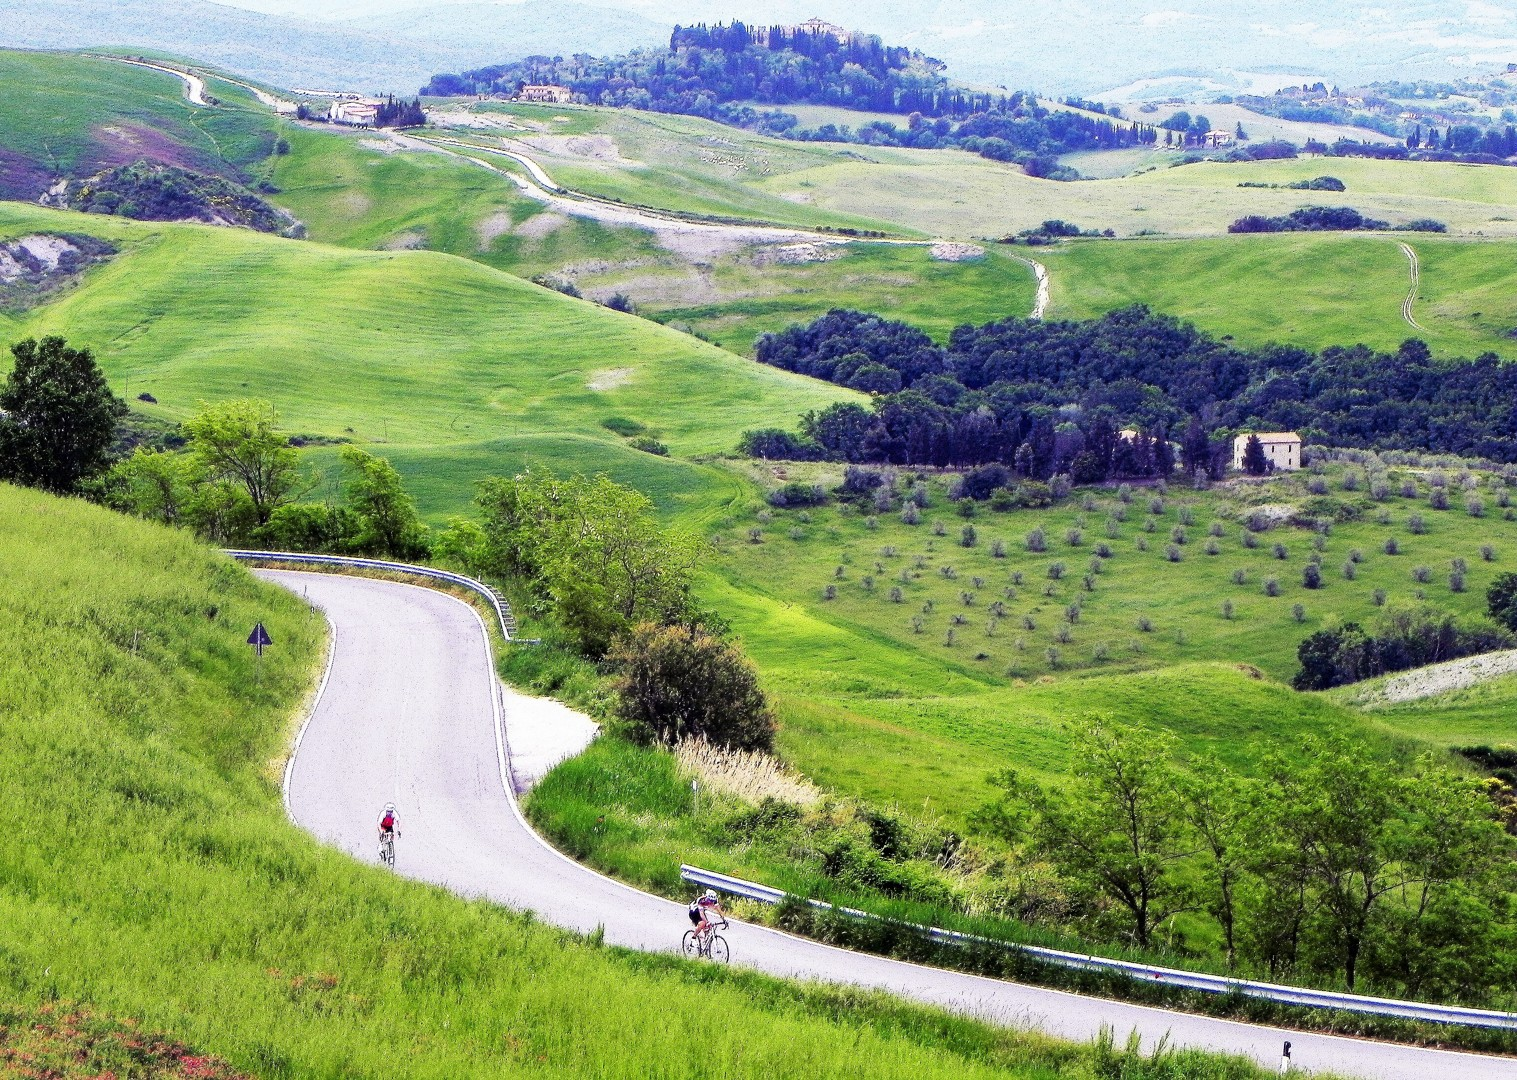 landscapes-italy-tuscany-road-cycling.jpg - Italy - Tuscany Tourer - Guided Road Cycling Holiday - Road Cycling